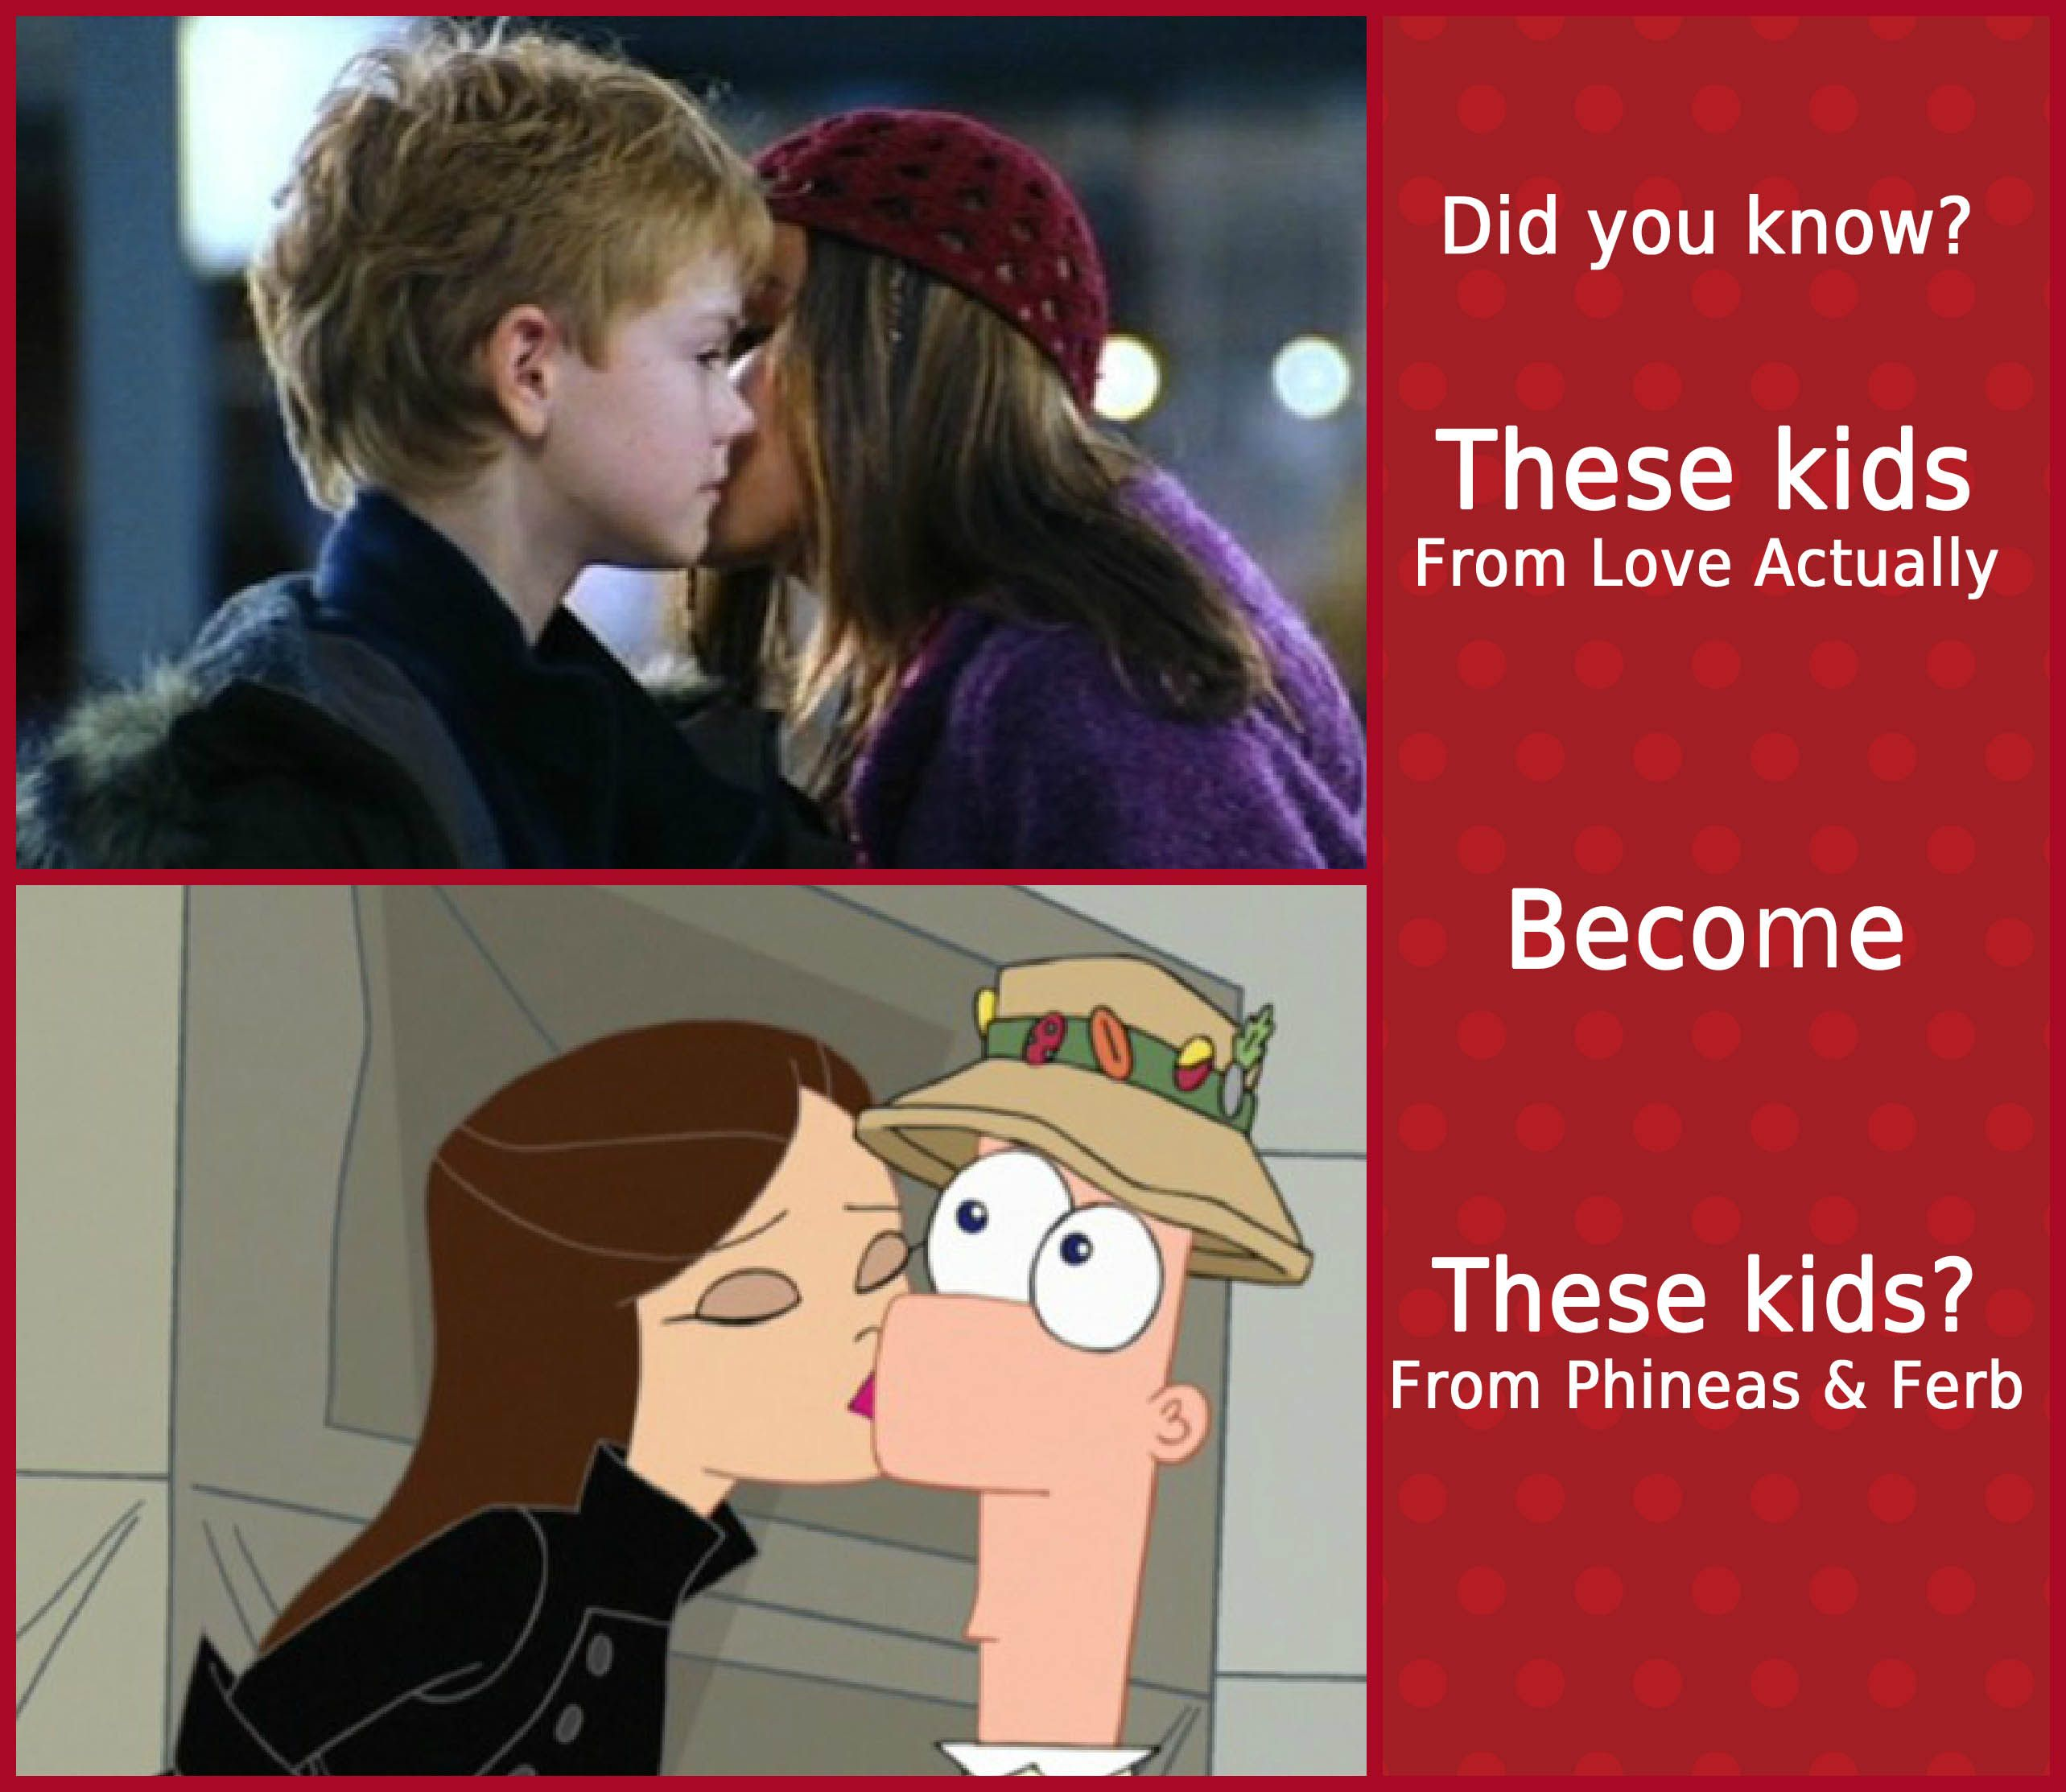 vanessa and ferb love actually movies ive reviewed